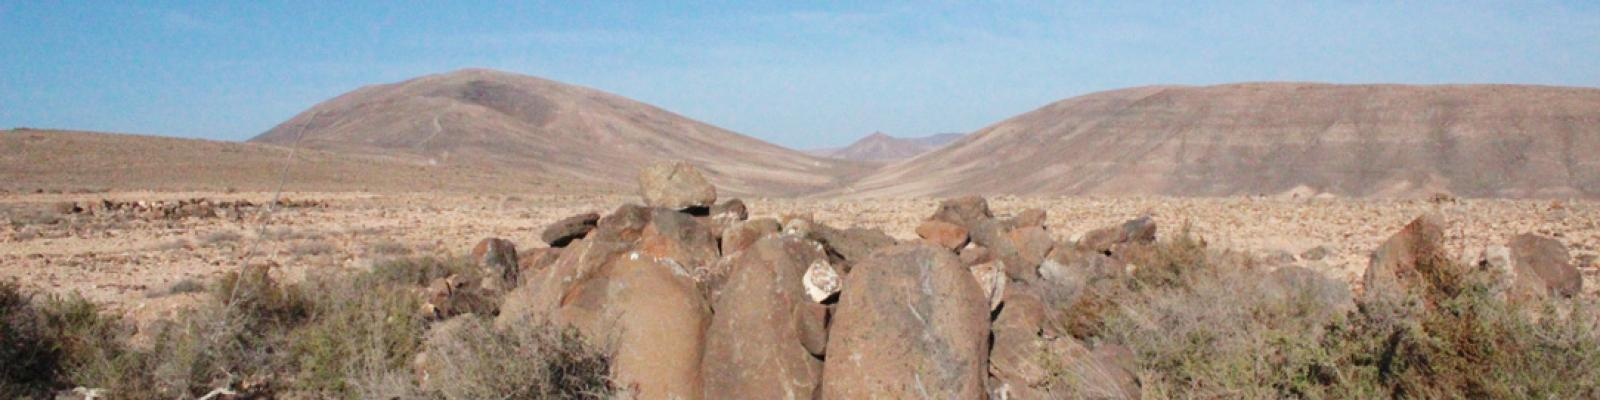 Easy Hike in Fuerteventura - For all ages & experiences